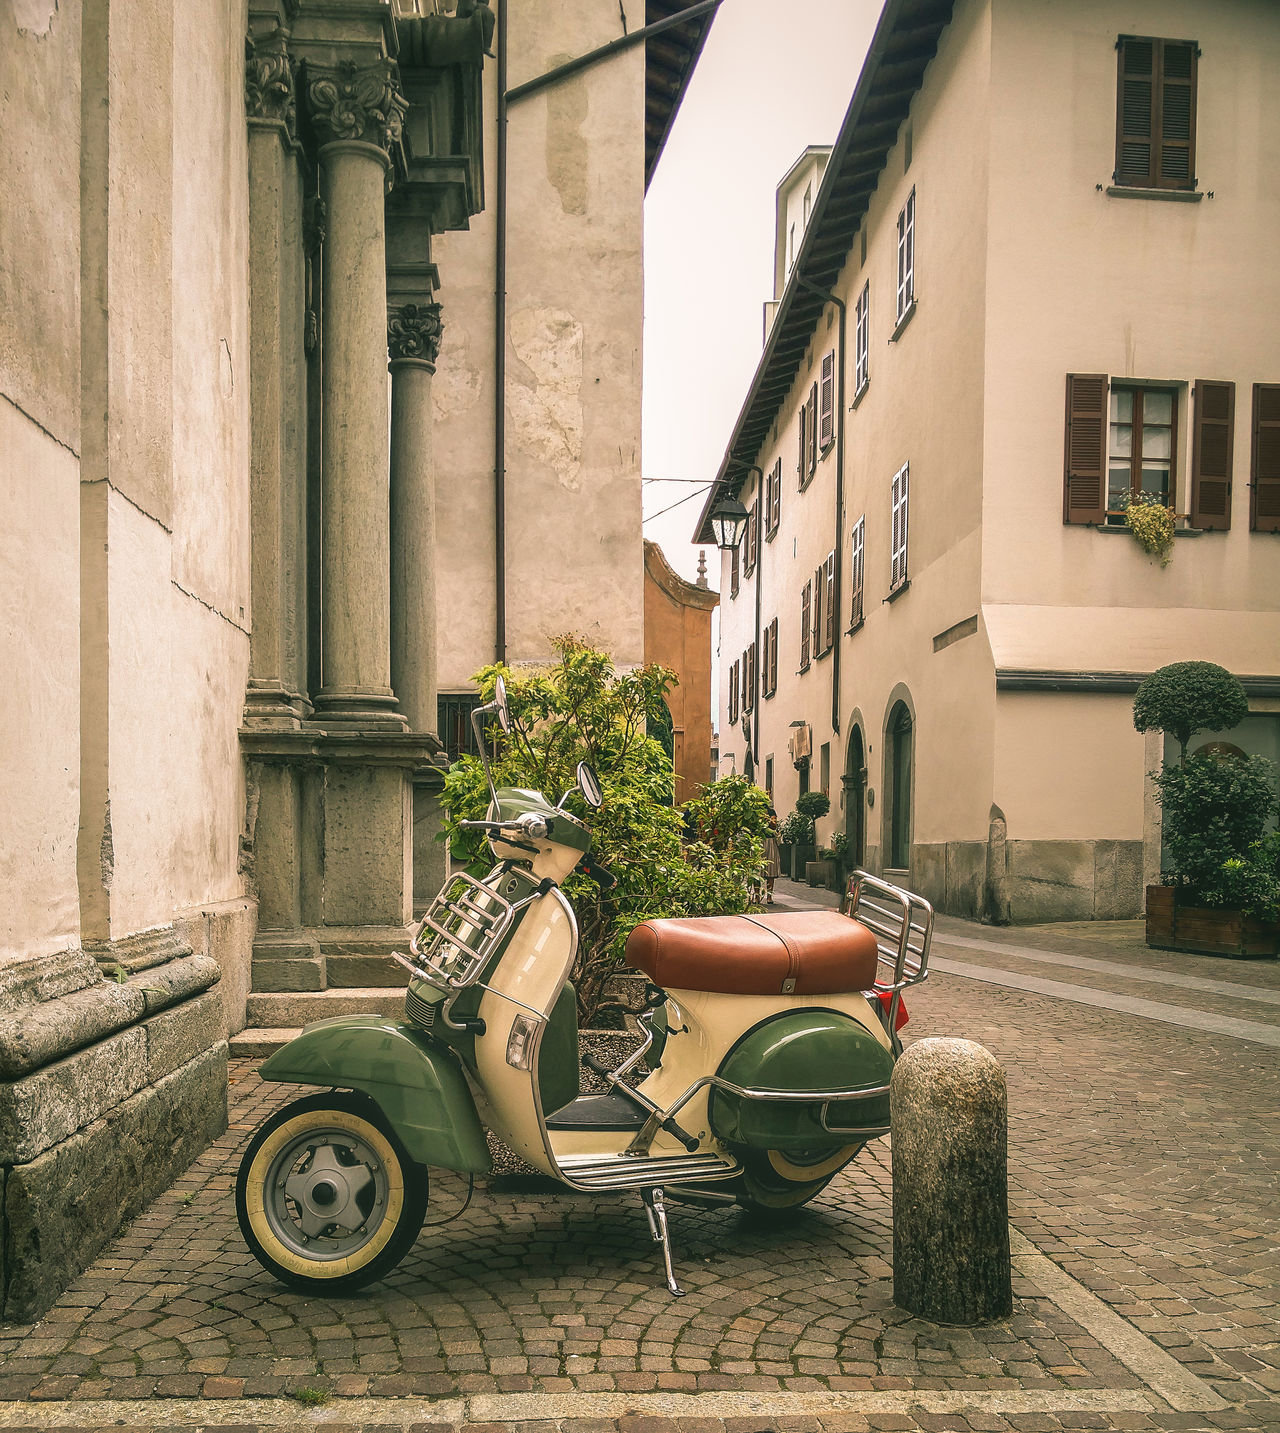 Andiamo! ;) Architecture Building Exterior Built Structure Chair City Day EyeEm Italy EyeEm Team Italia Italy No People Old Buildings Old Town Outdoors Picturesque Vespa VESPA Bella Vespalovers Vespavintage Vintage Embrace Urban Life Tadaa Community My Year My View Finding New Frontiers